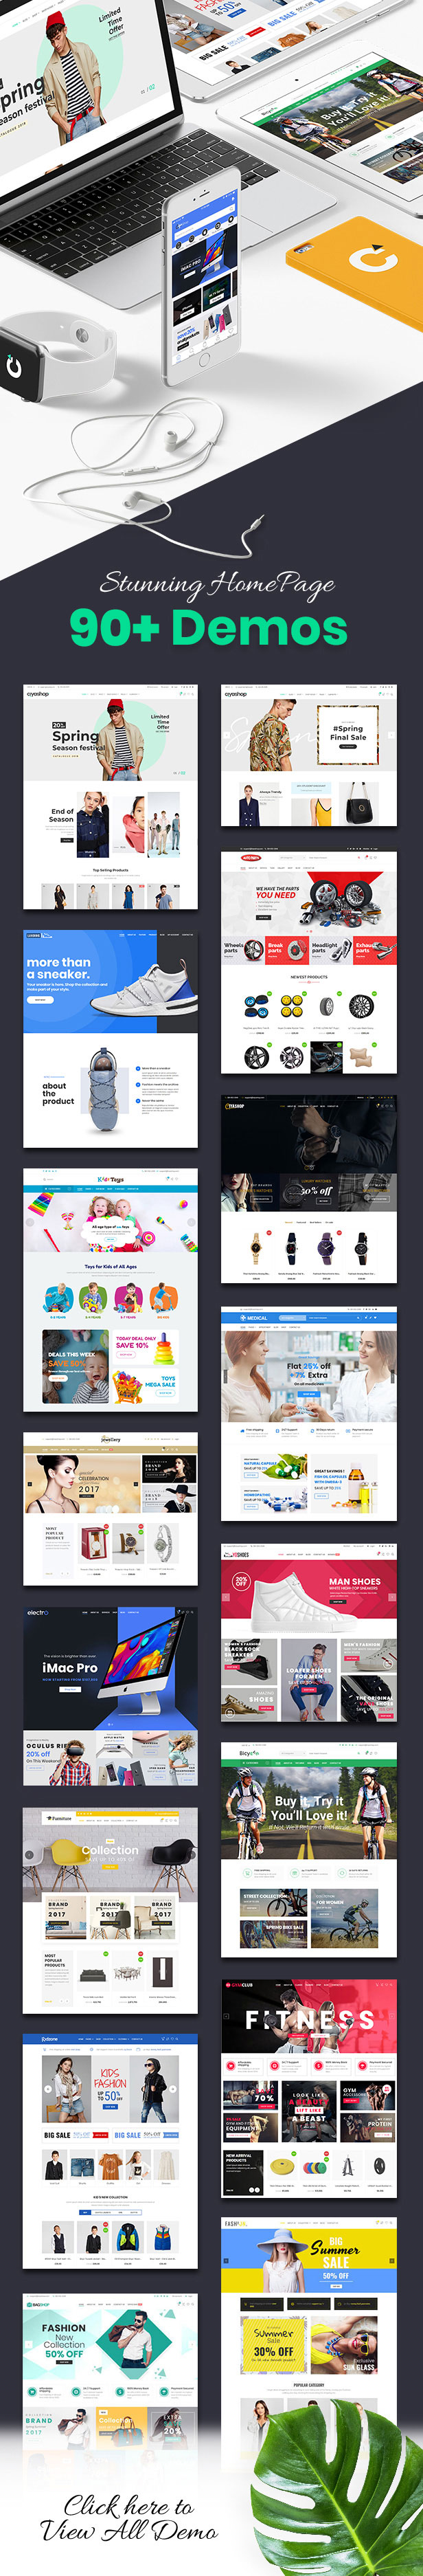 CiyaShop - Responsive Multi-Purpose WooCommerce WordPress Theme - 2